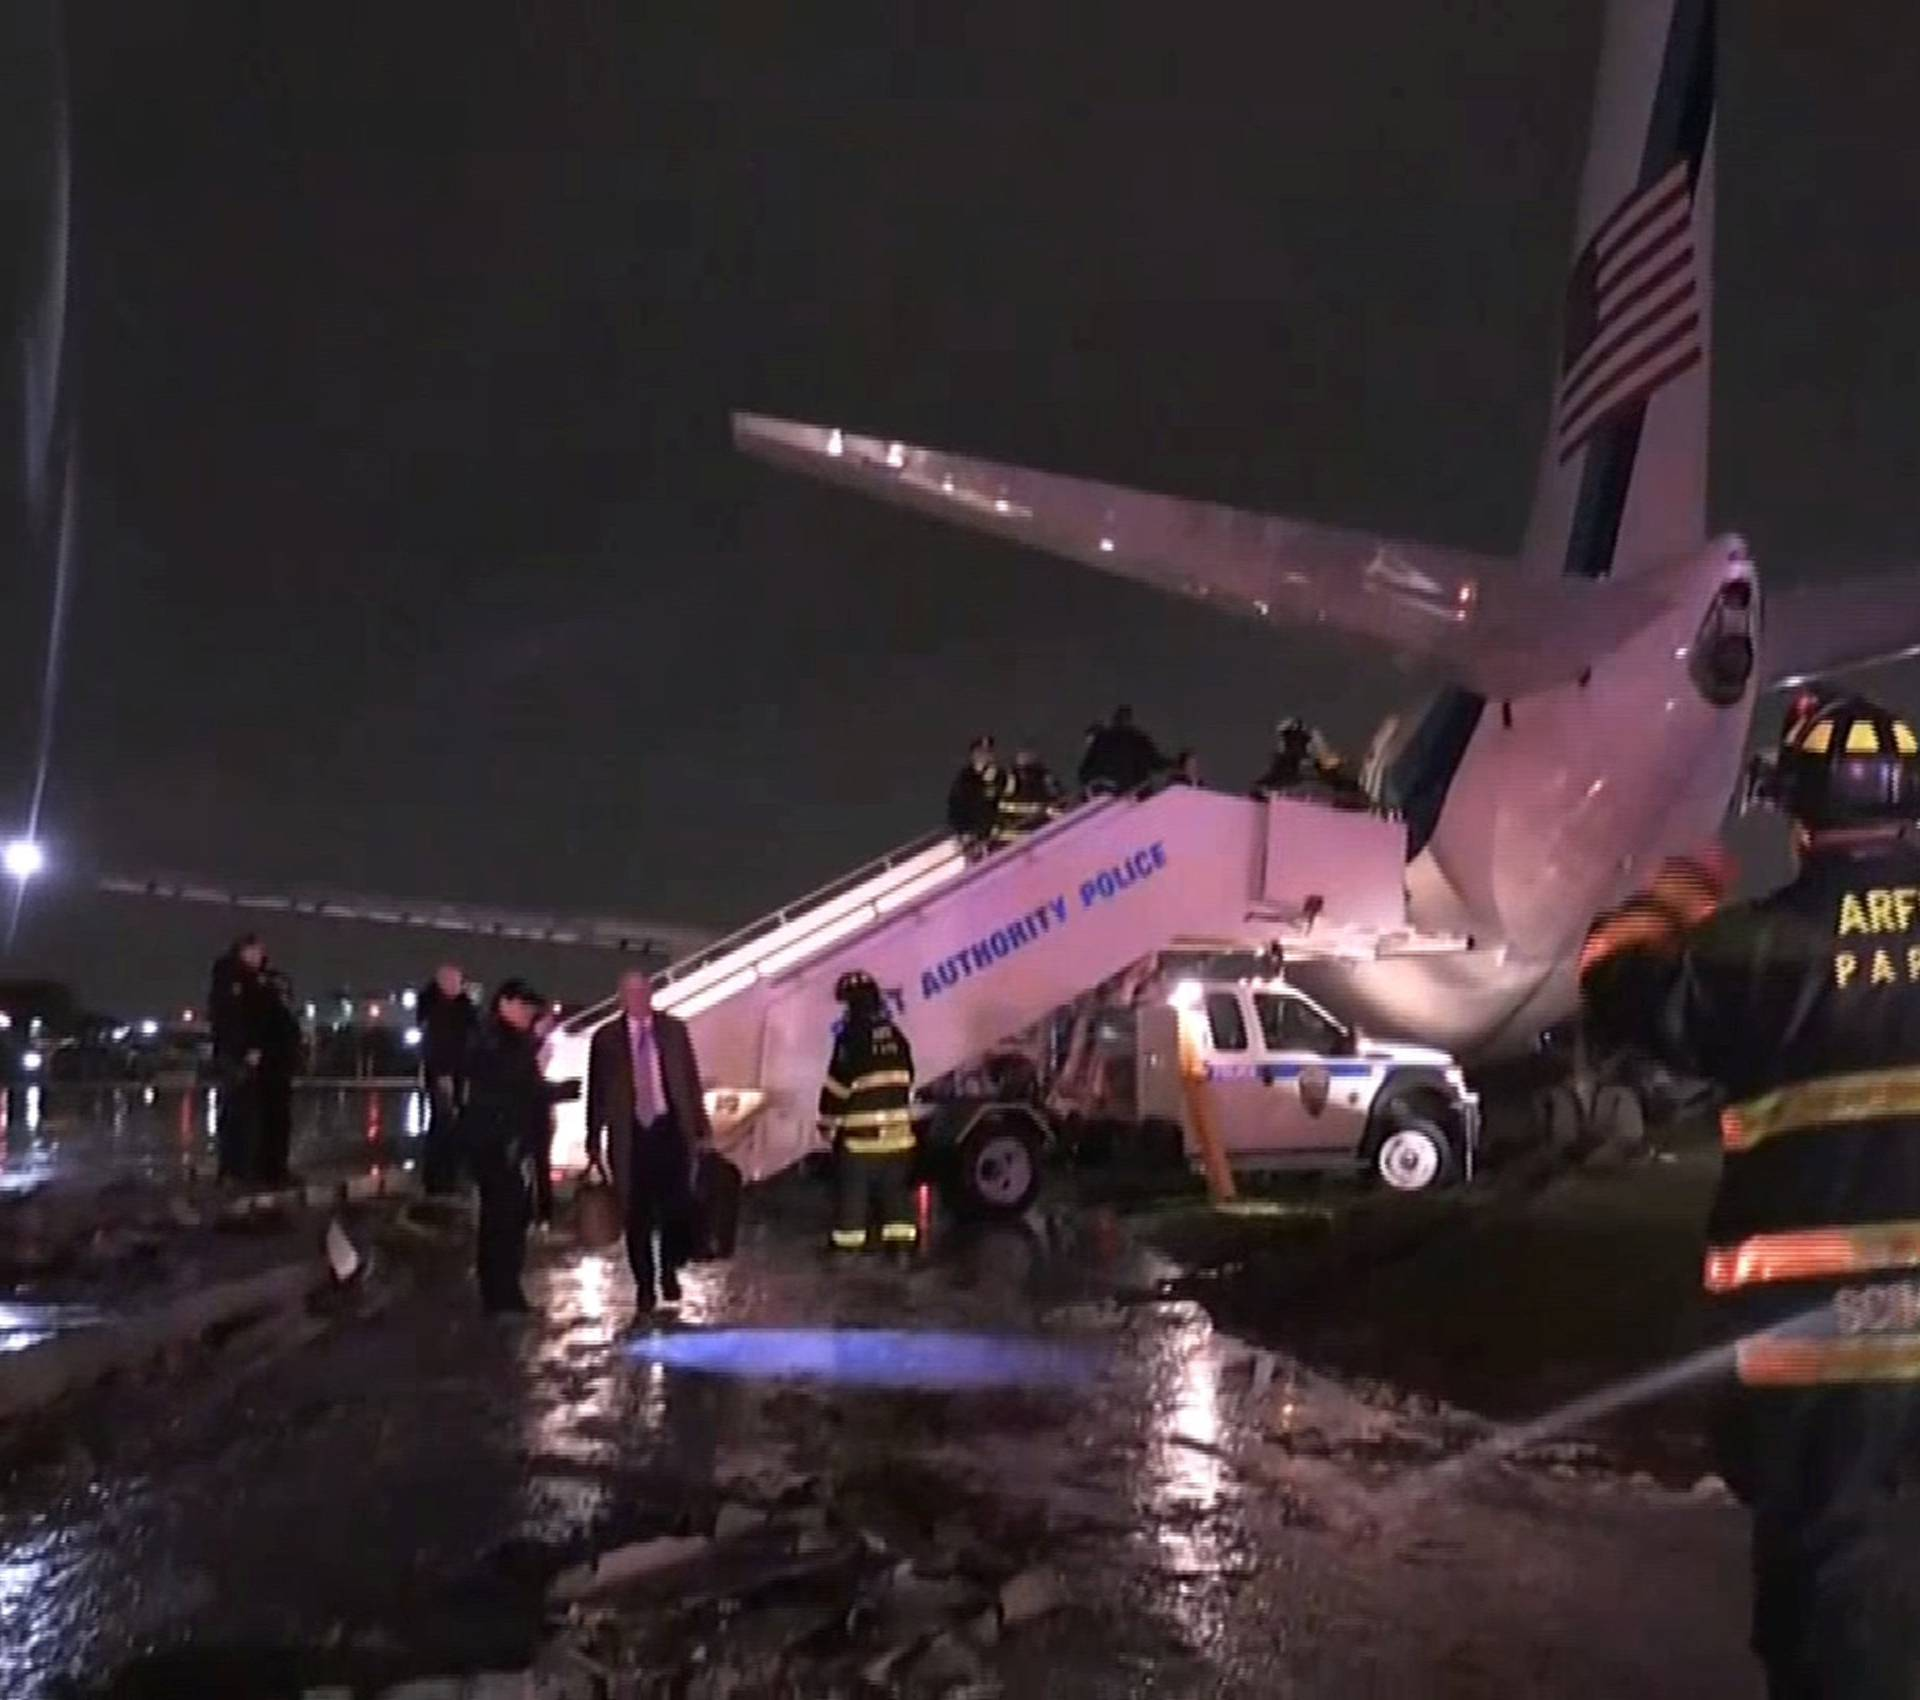 Still image of emergency workers standing in front of the plane carrying U.S. Republican vice presidential nominee Mike Pence after it skidded off the runway after landing in the rain at New York City's LaGuardia Airport